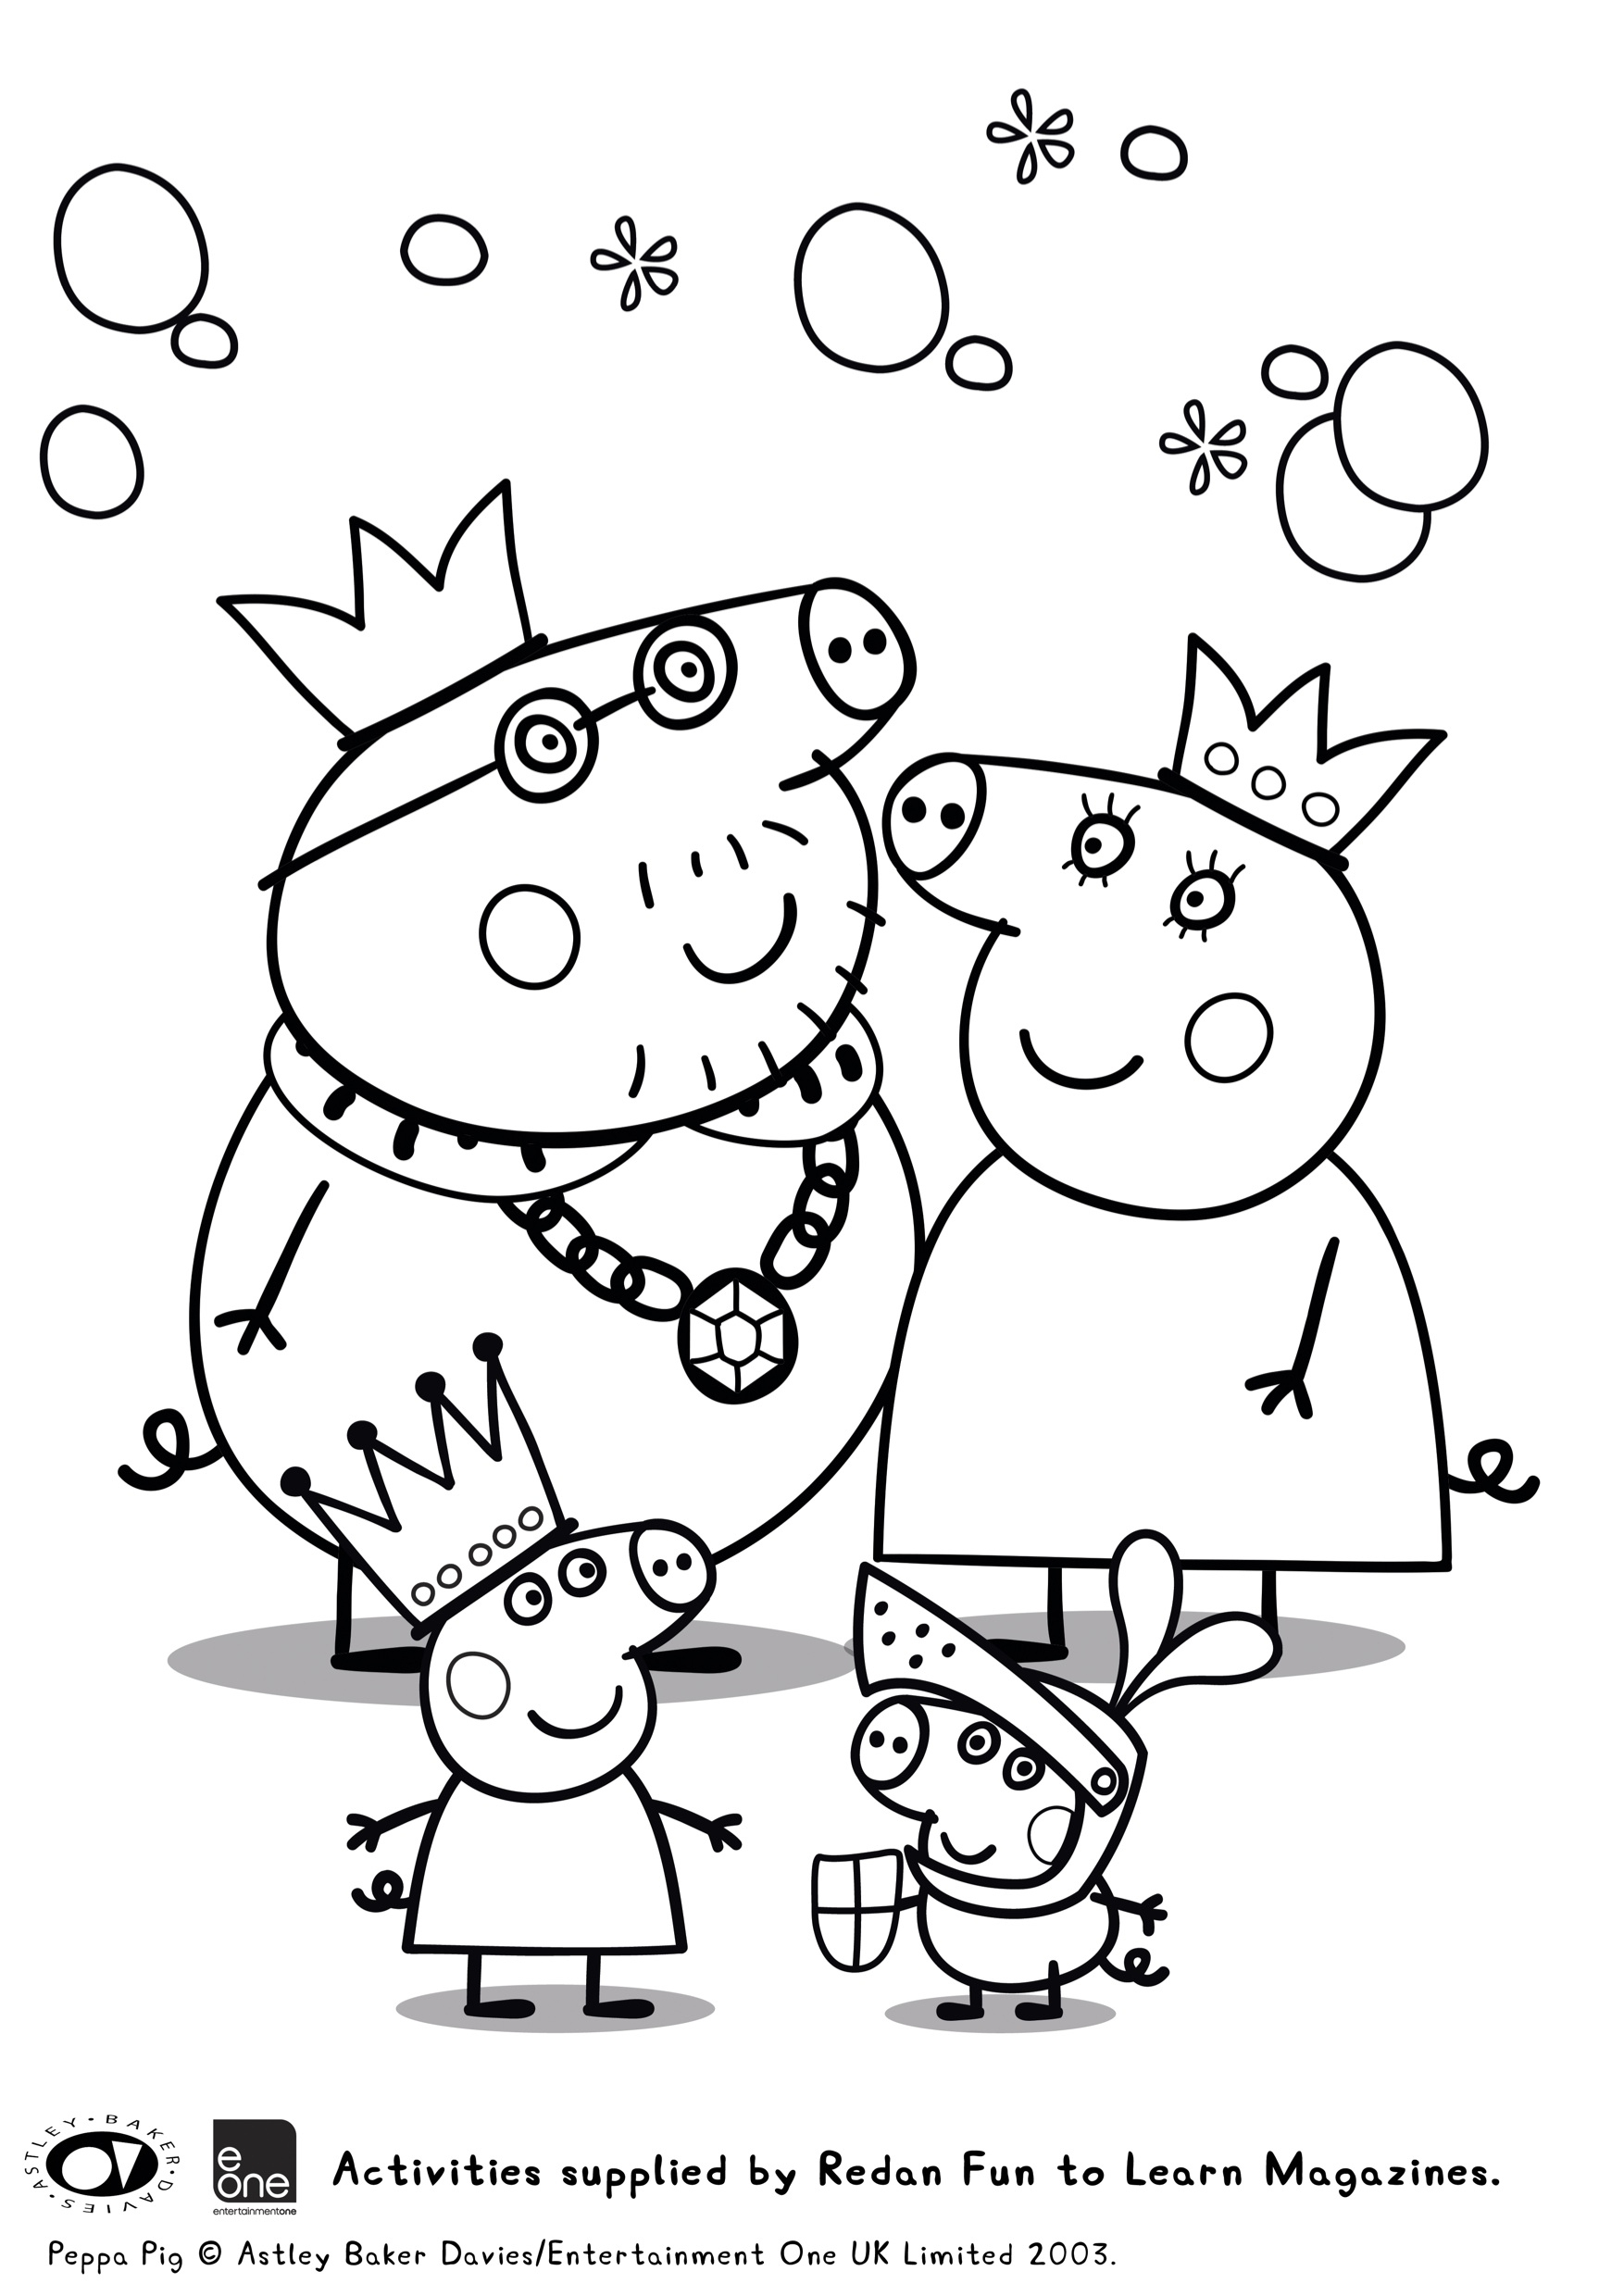 Coloring Pages : Peppa Pig Sketch At Paintingvalley Explore tout Peppa Pig A Colorier